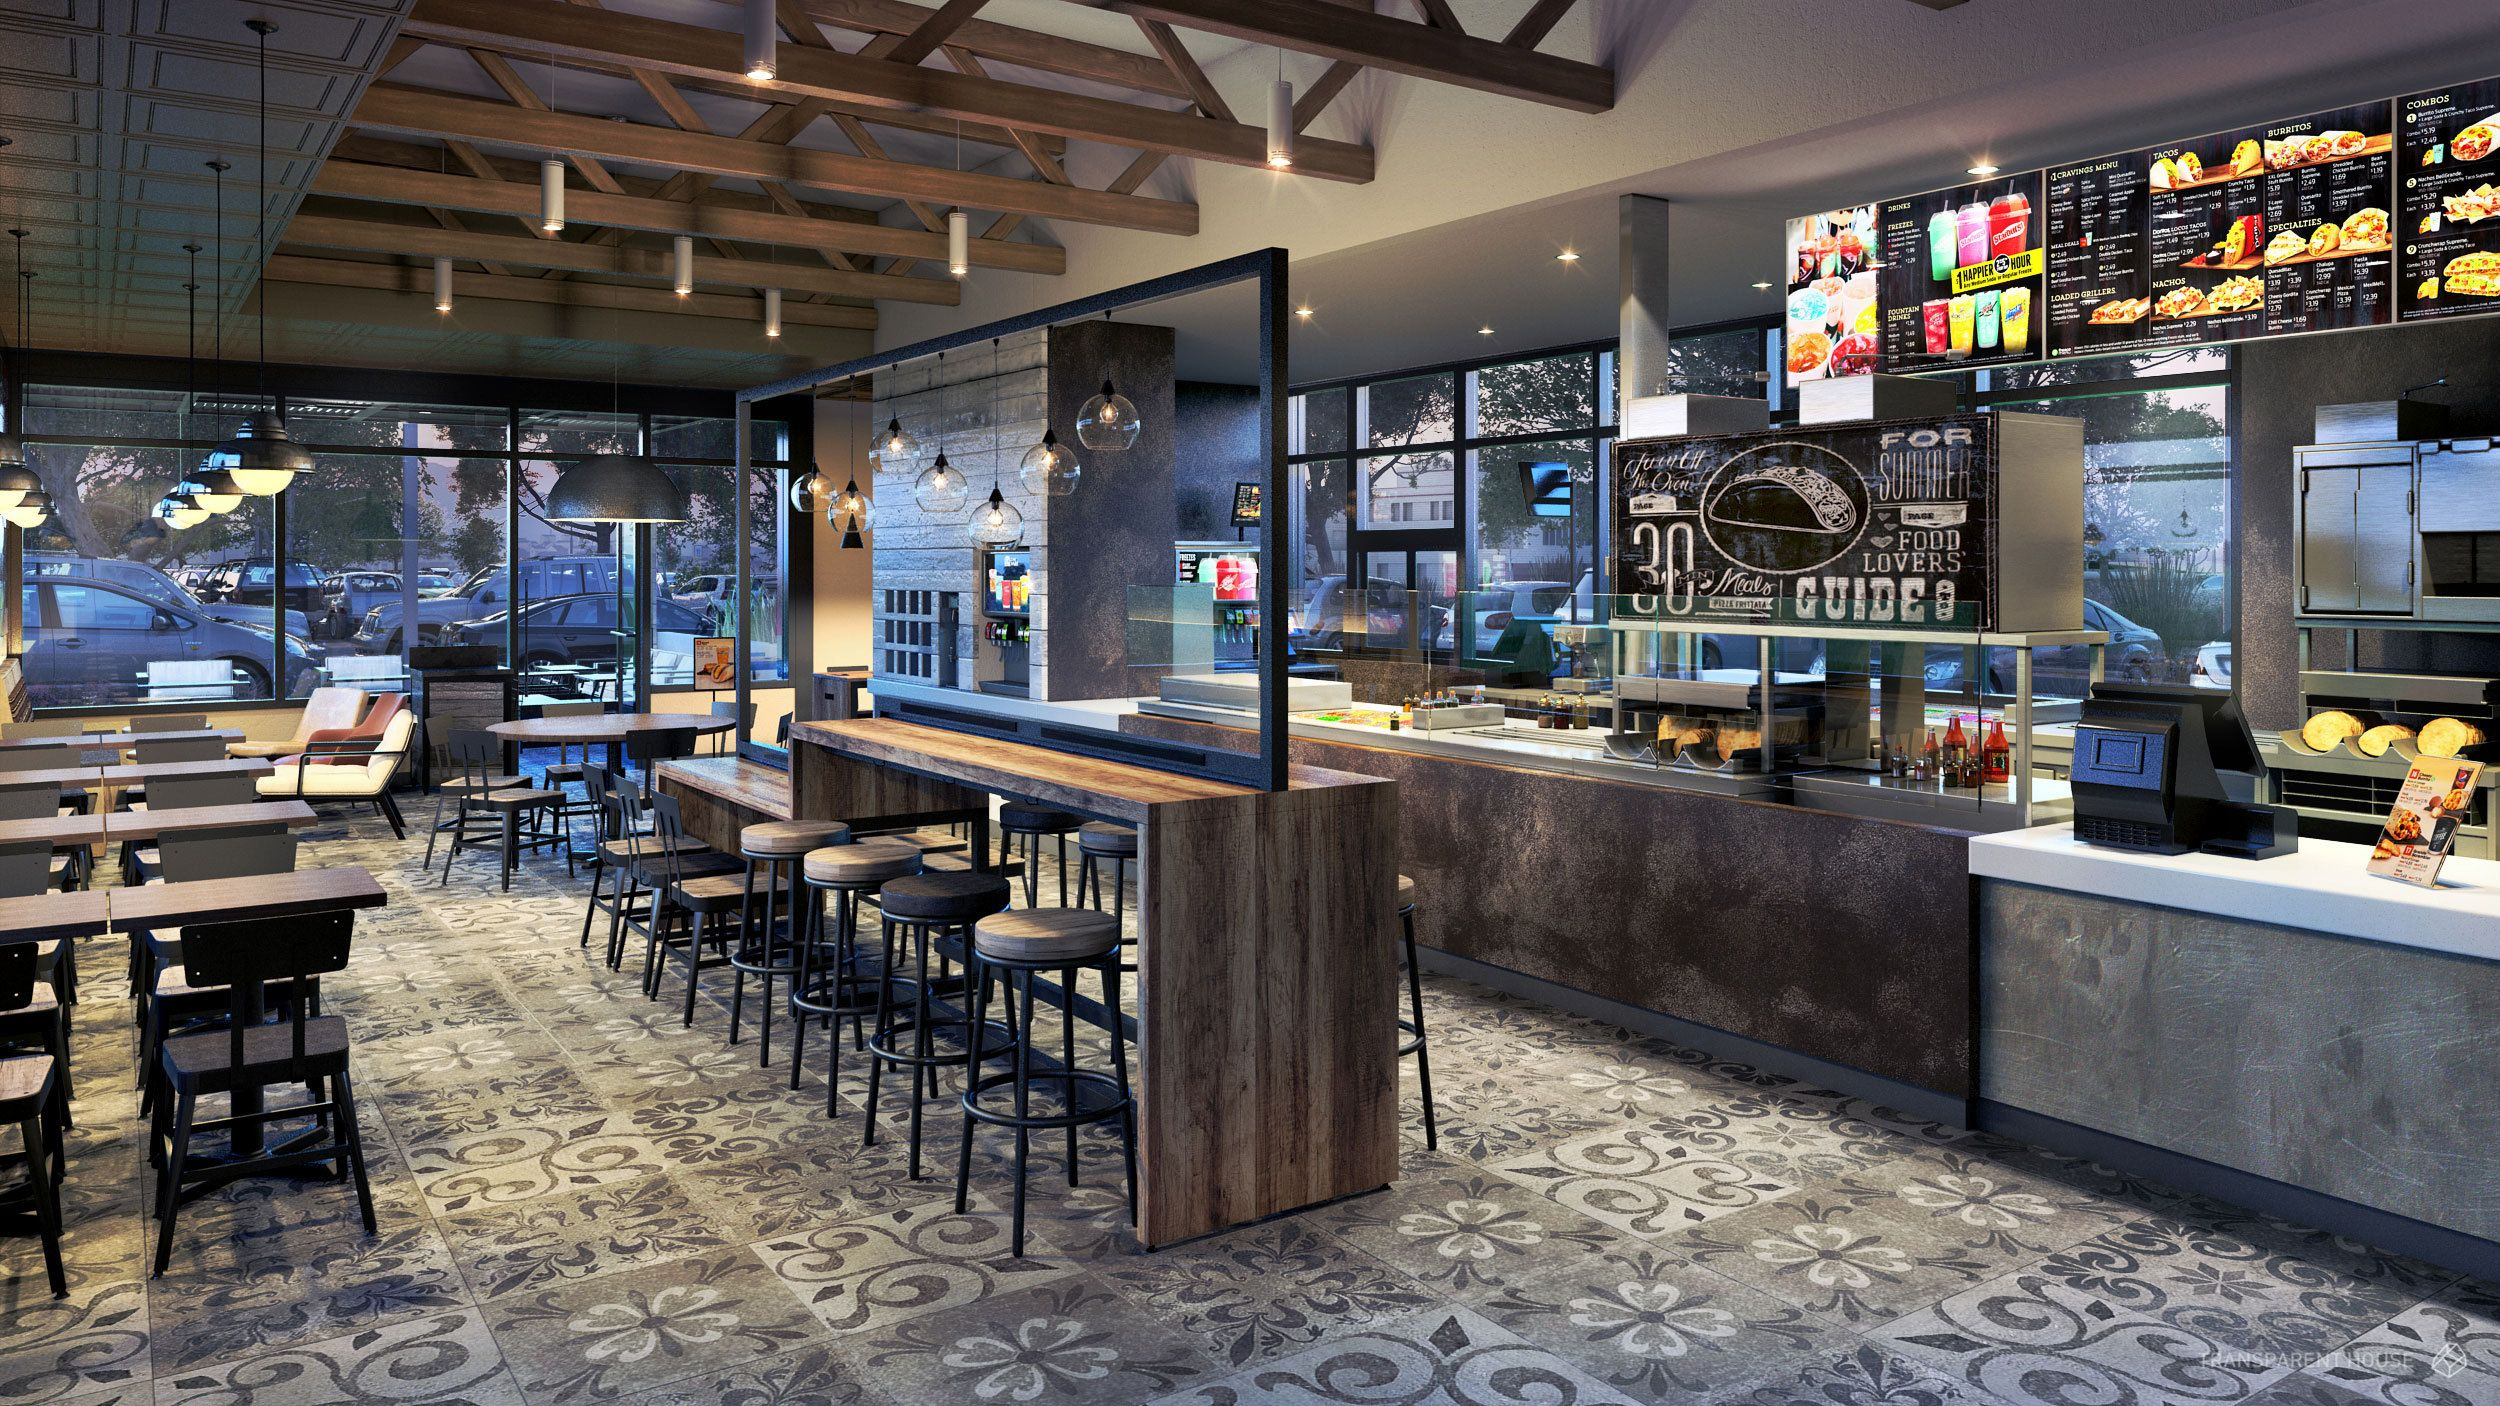 Concept Restaurants   This Summer, Taco Bell Will Be Unveiling Four New  Concept Restaurants In Orange County, California. While Still Serving Taco  Bellu0027s ...